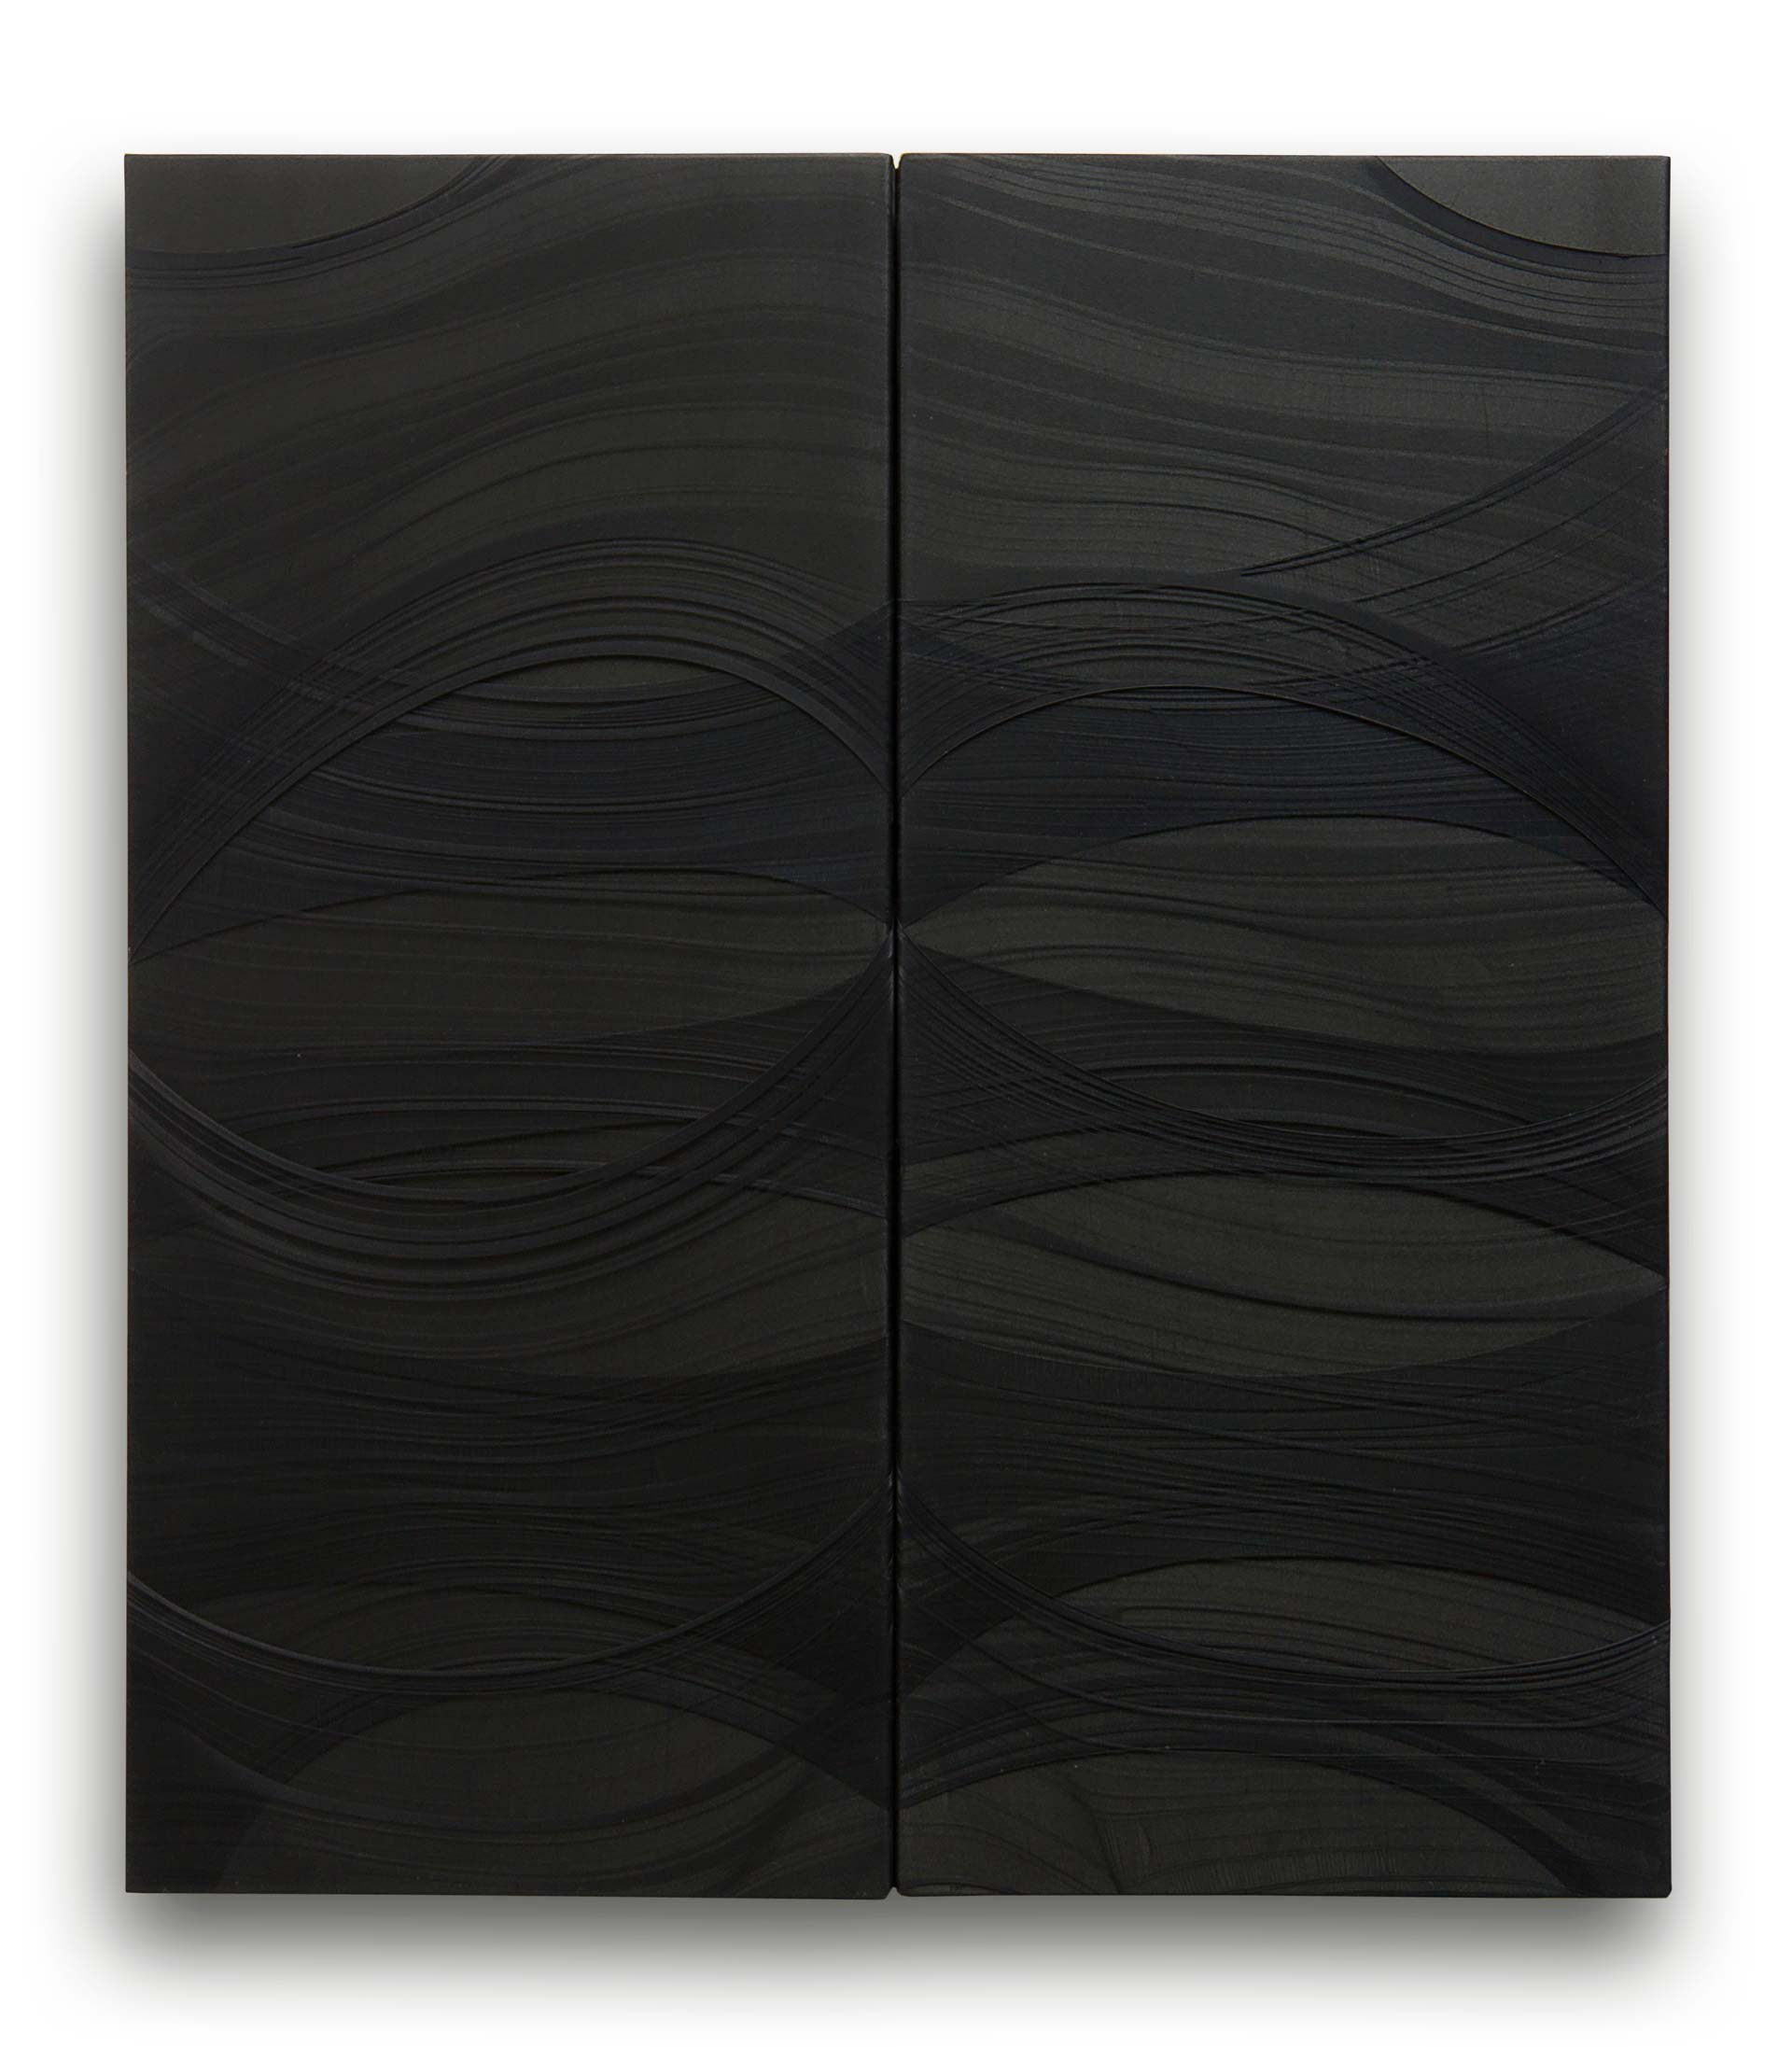 NERI • Komposition 189 (Pierre Soulages zu Ehren)